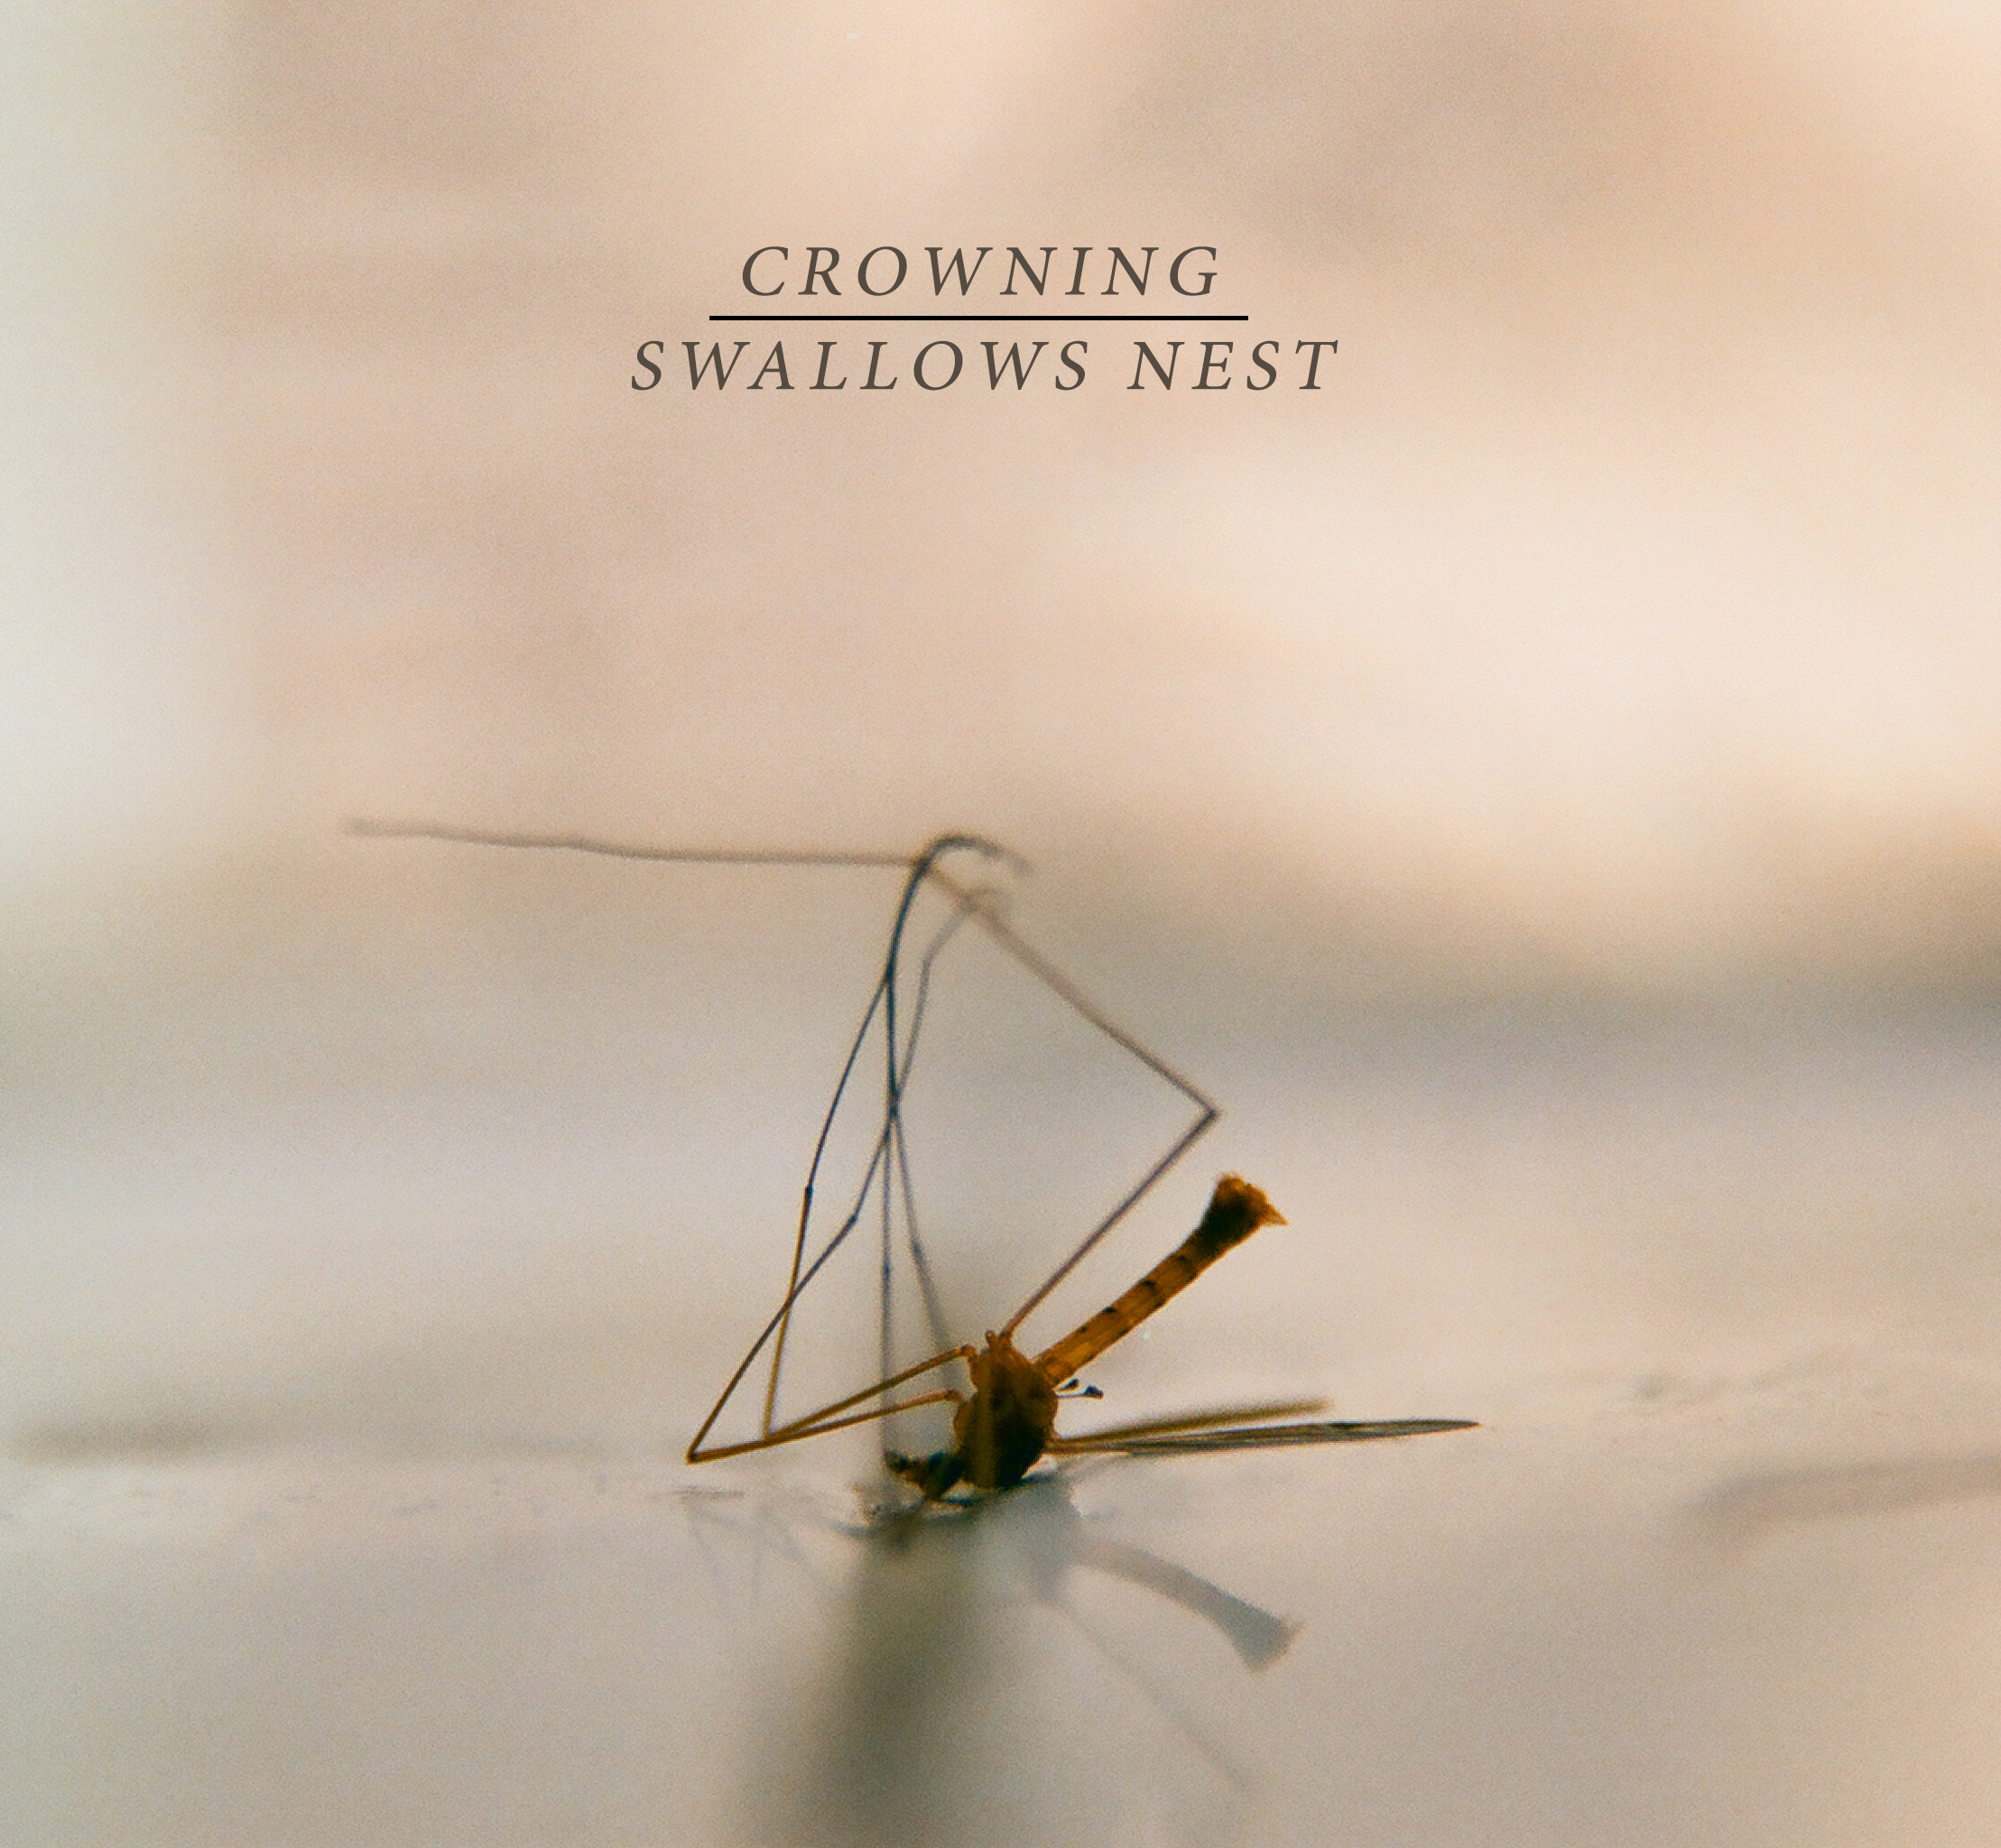 "Crowning / Swallows Nest - split 7"" - $5"